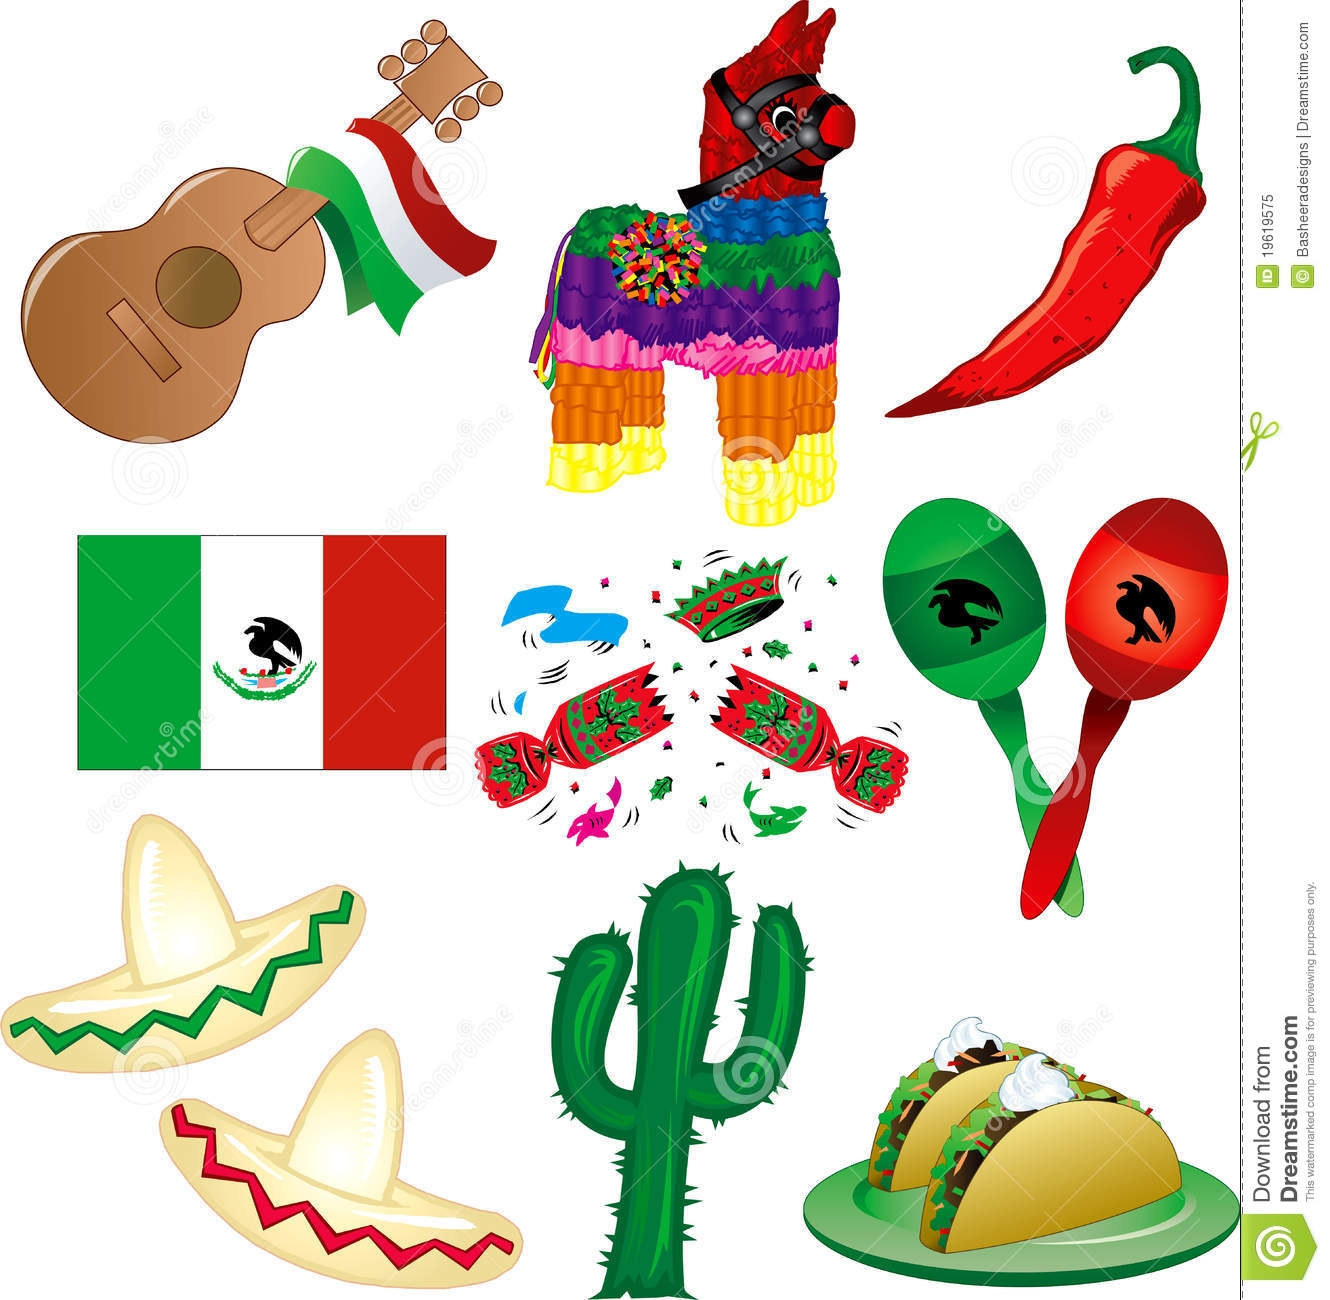 Decoration clipart mexican decoration Patio Decorations Mexican Craft Design